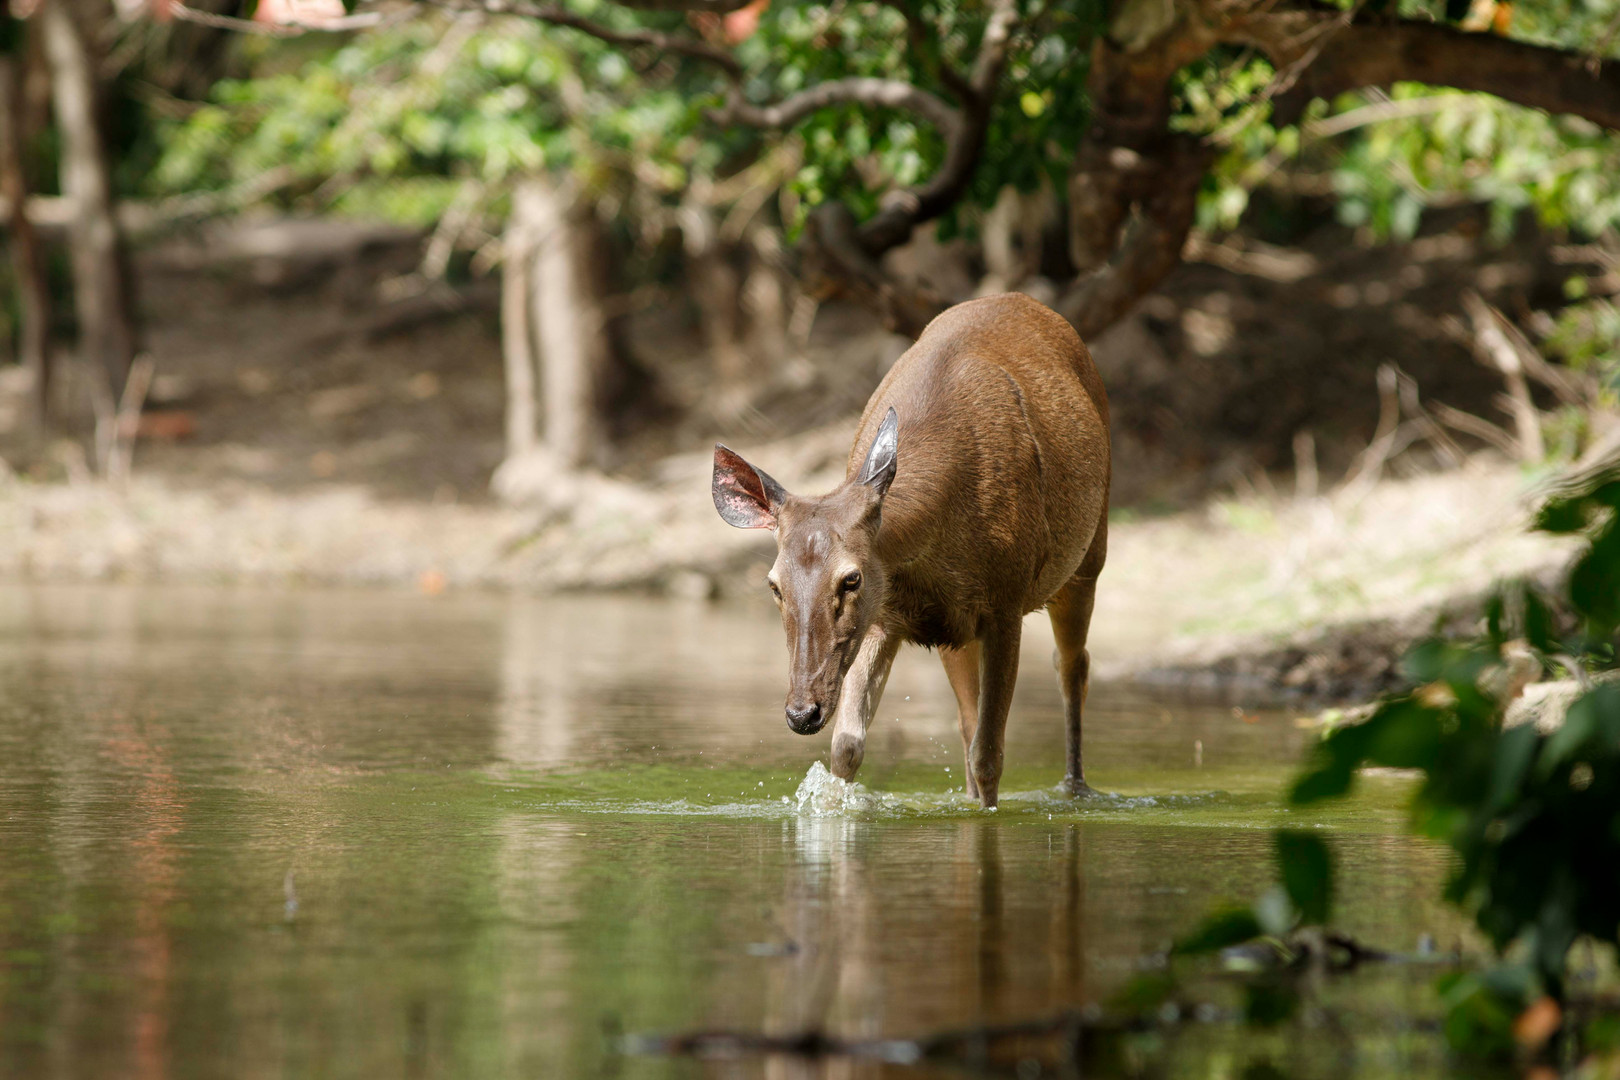 Sambar Deer: This species has been listed as vulnerable on the IUCN red list since 2008, and is particularly threatened within Cambodia, and so release programs such as those conducted by Wildlife Alliance are of particular importance. A number of the animals have been released and actually thrive in the forest that surrounds Phnom Tamao Wildlife Rescue Centre south of Phnom Penh, with this female nonchalantly wading through one of the lakes as guests watched on close by.